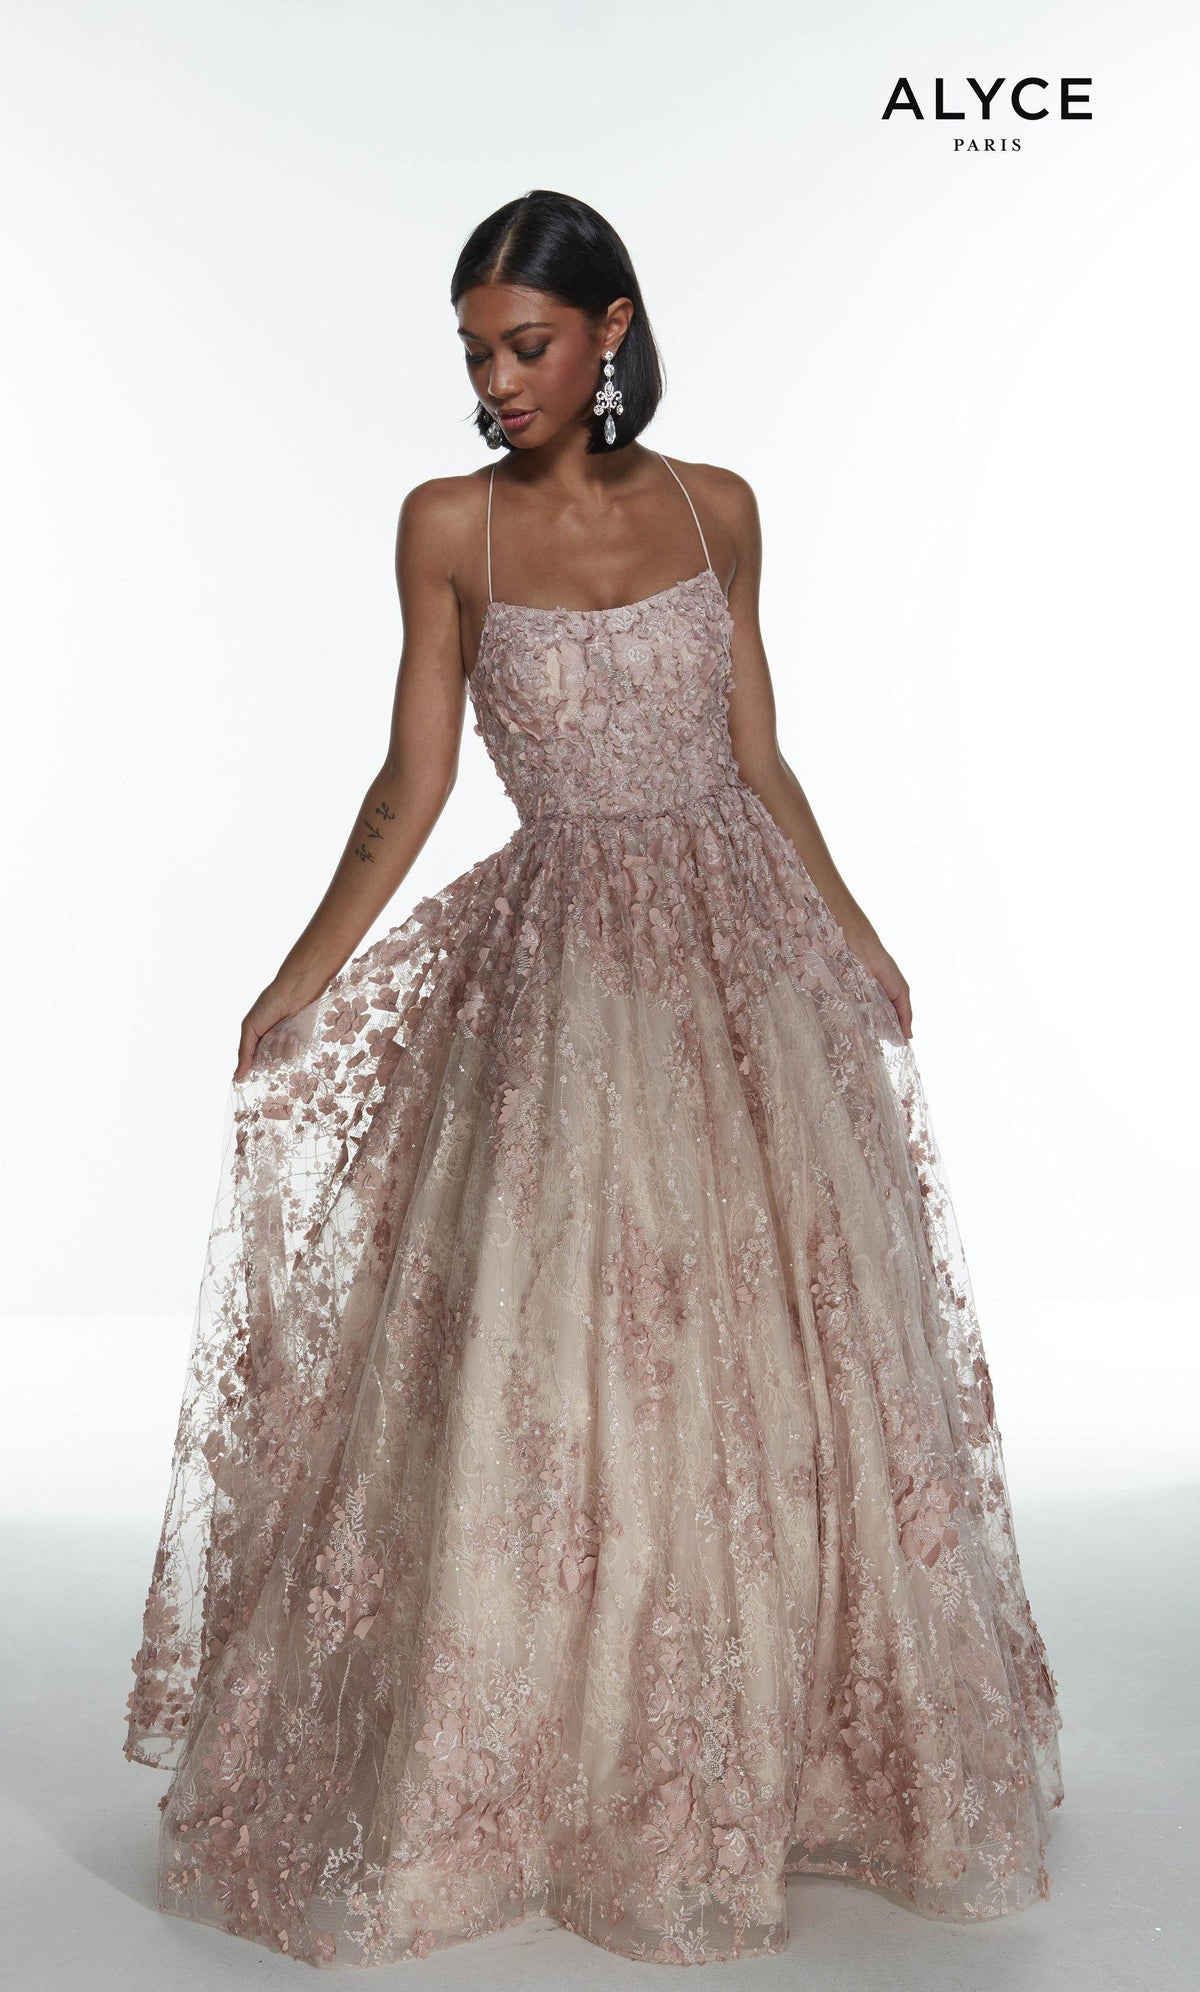 French Pink 3D lace glitter and stone embellished ballgown with a square neckline